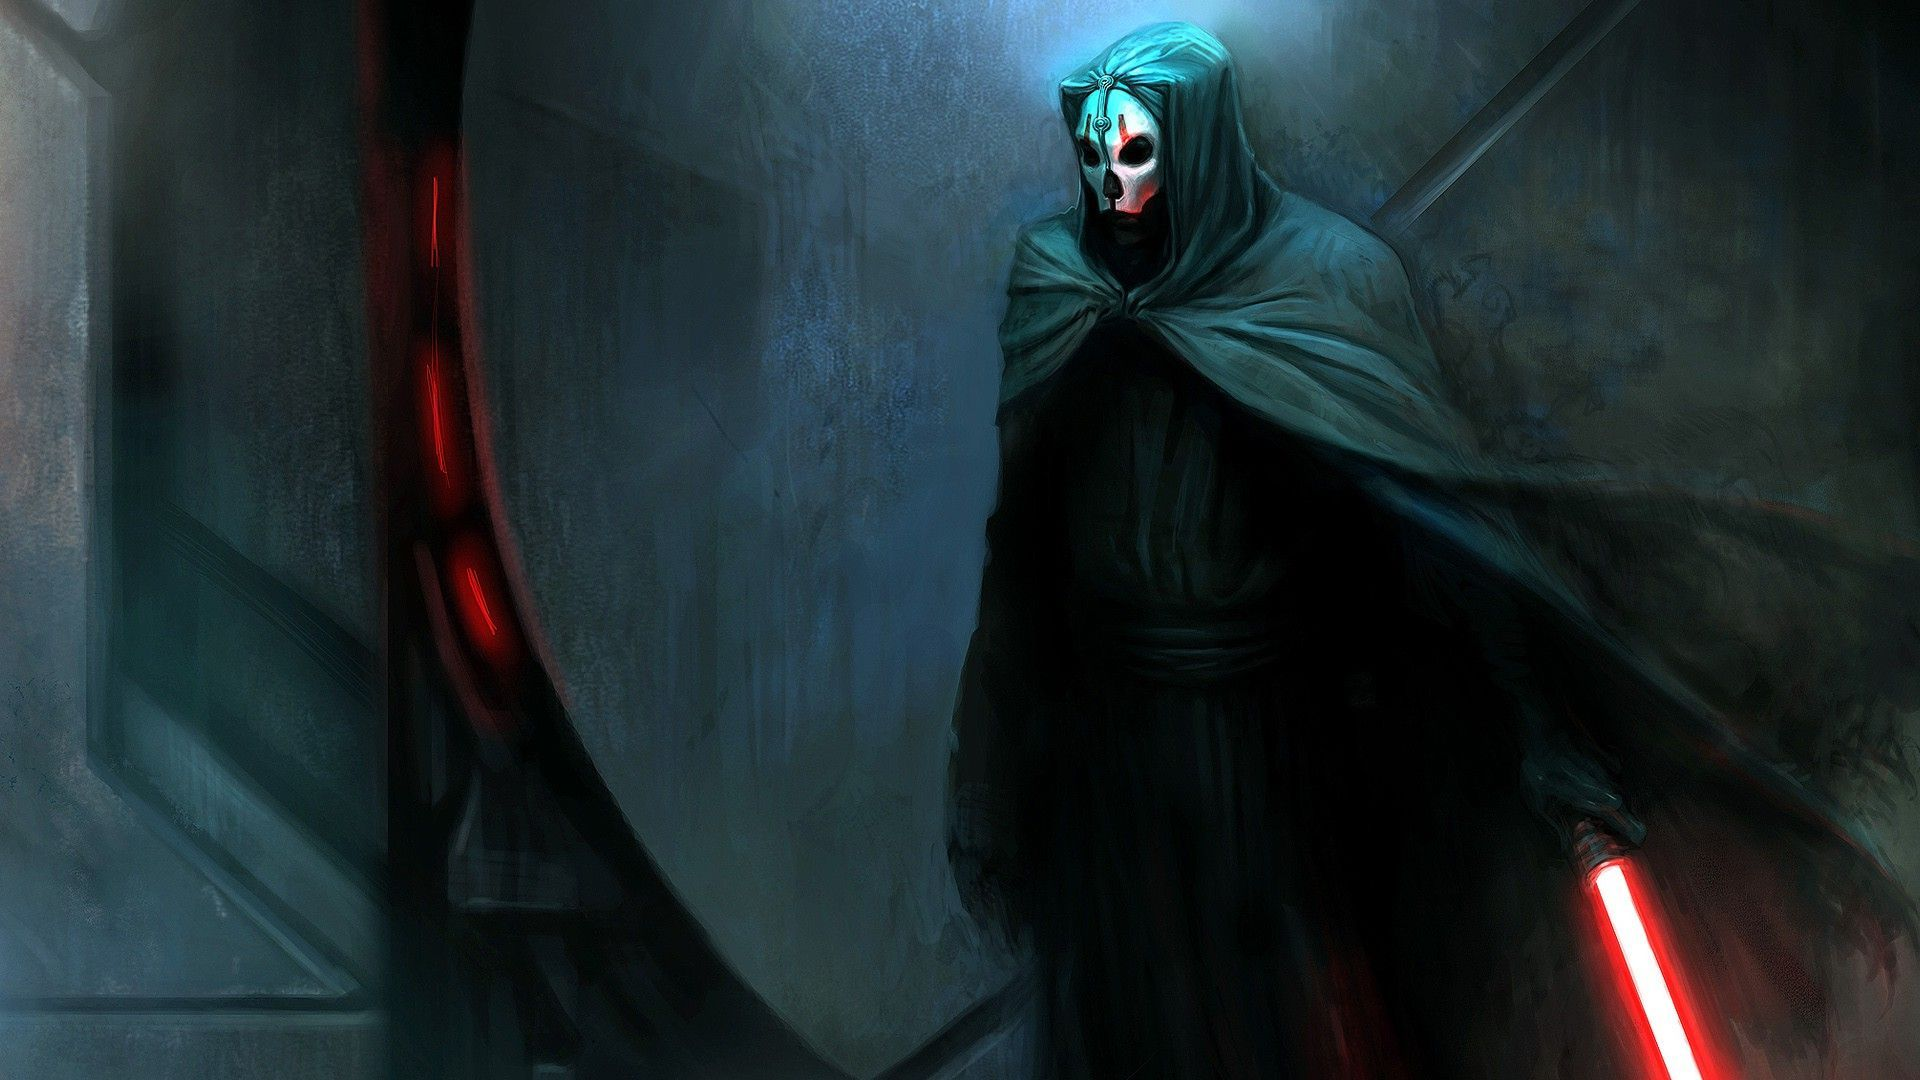 Darth Nihilus Wallpapers Top Free Darth Nihilus Backgrounds